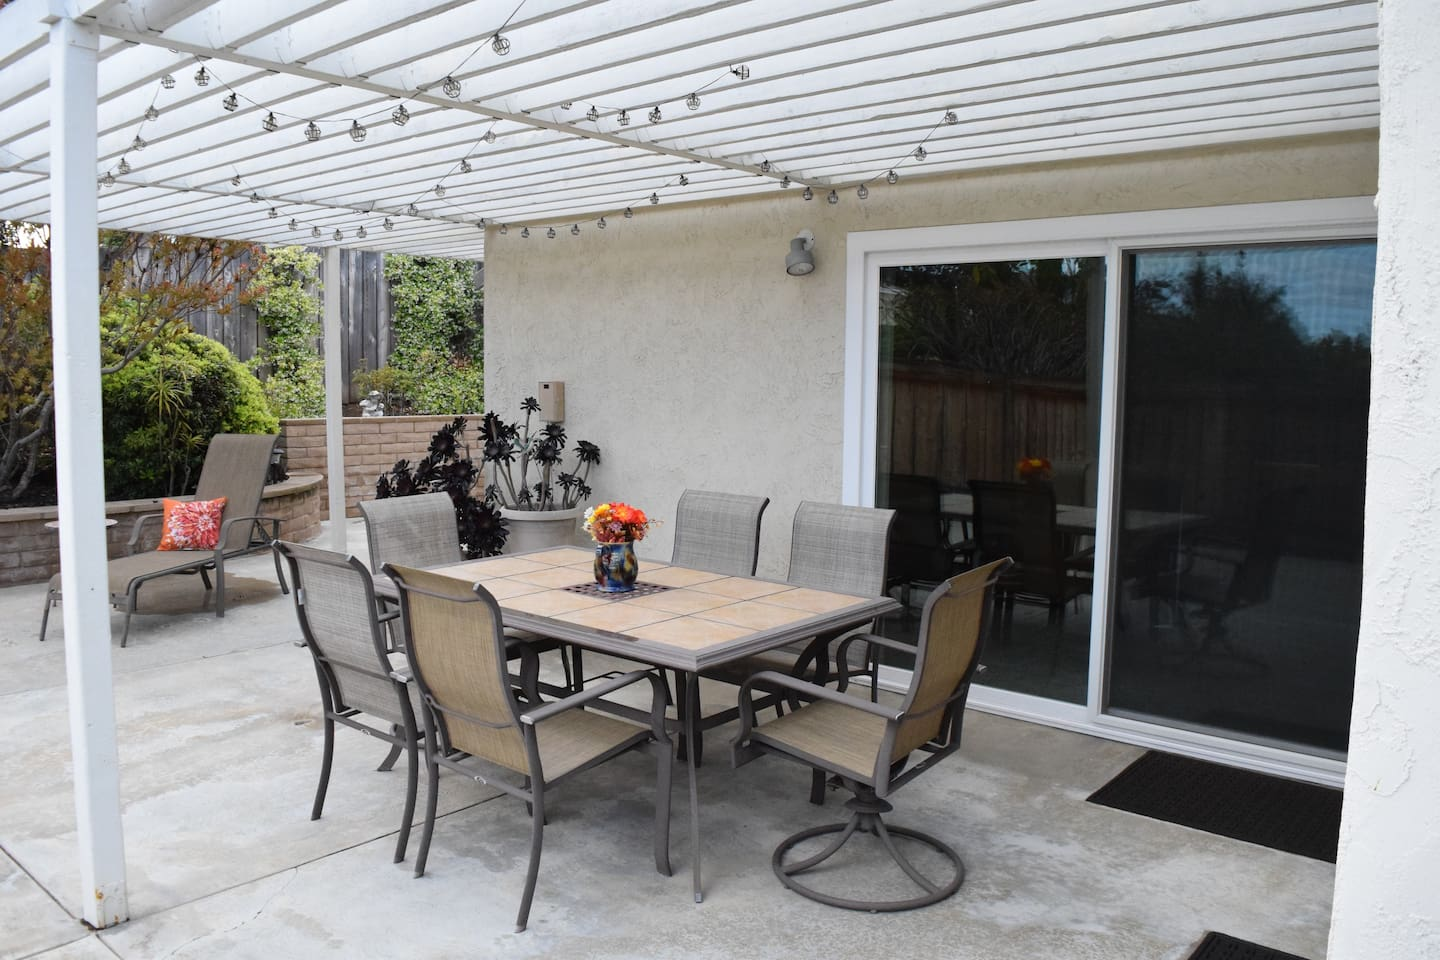 Fun solar lights over patio table create great evenings for entertaining